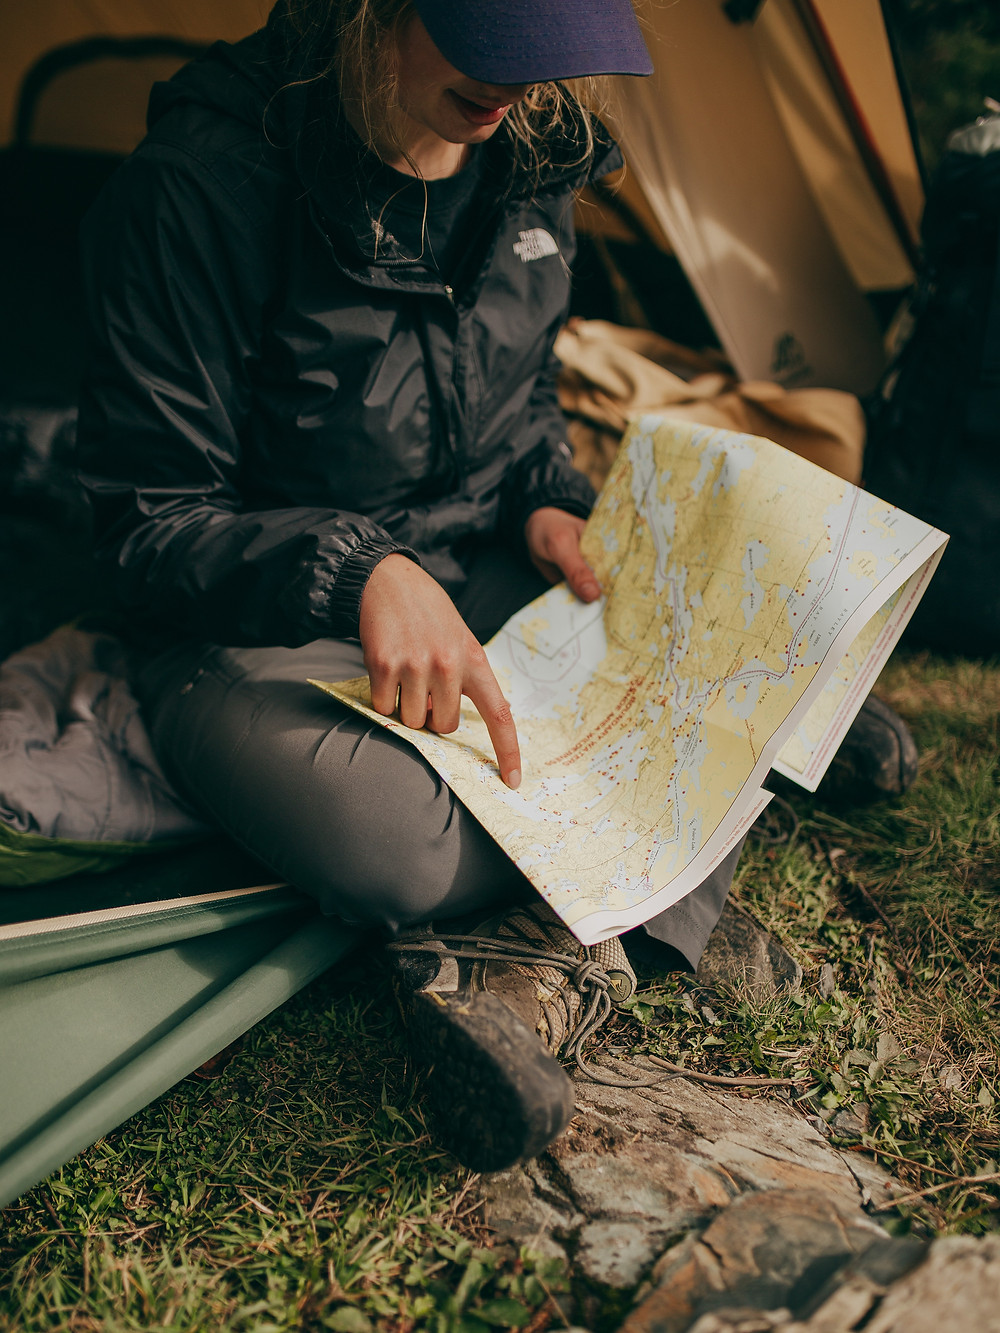 woman-sitting-in-tent-and-pointing-at-map-in-hand